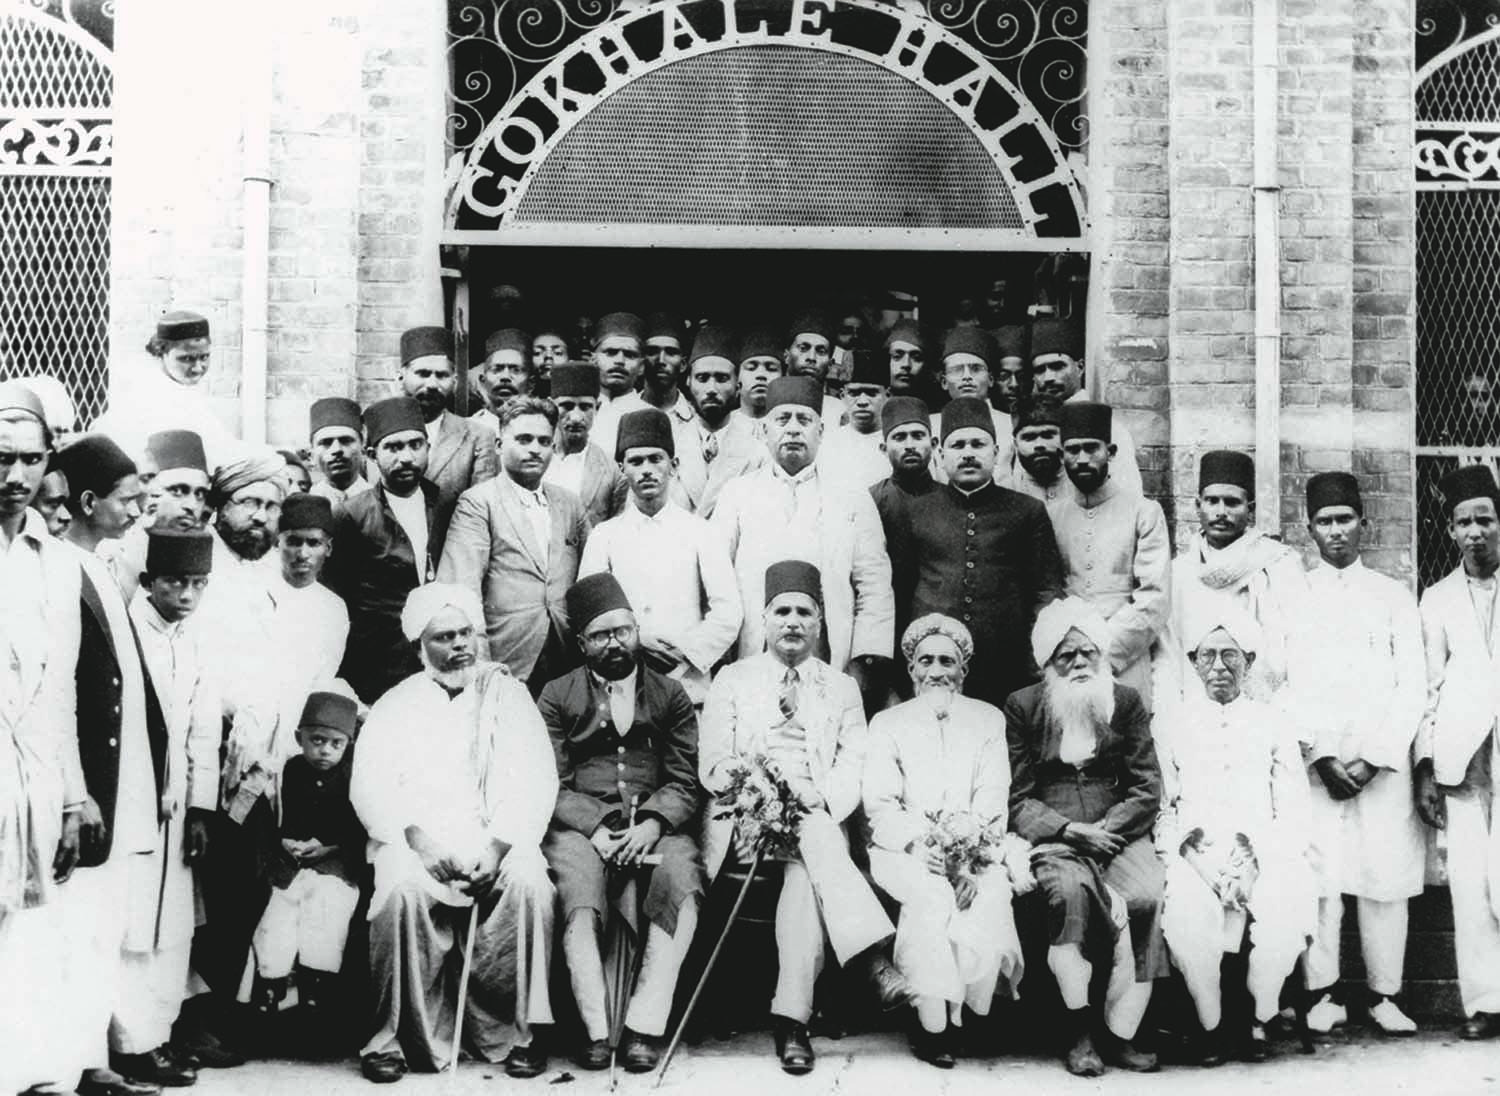 Allama Muhammad Iqbal (front row; centre) at the Gokhale Hall in Madras (since renamed Chennai) in 1929 after he had delivered one of his several famous lectures. The hall was named after Gopal Krishna Gokhale, a close friend of Quaid-i-Azam Mohammad Ali Jinnah, and a senior member of the Indian National Congress. | Photo: The Allama Iqbal Collection.